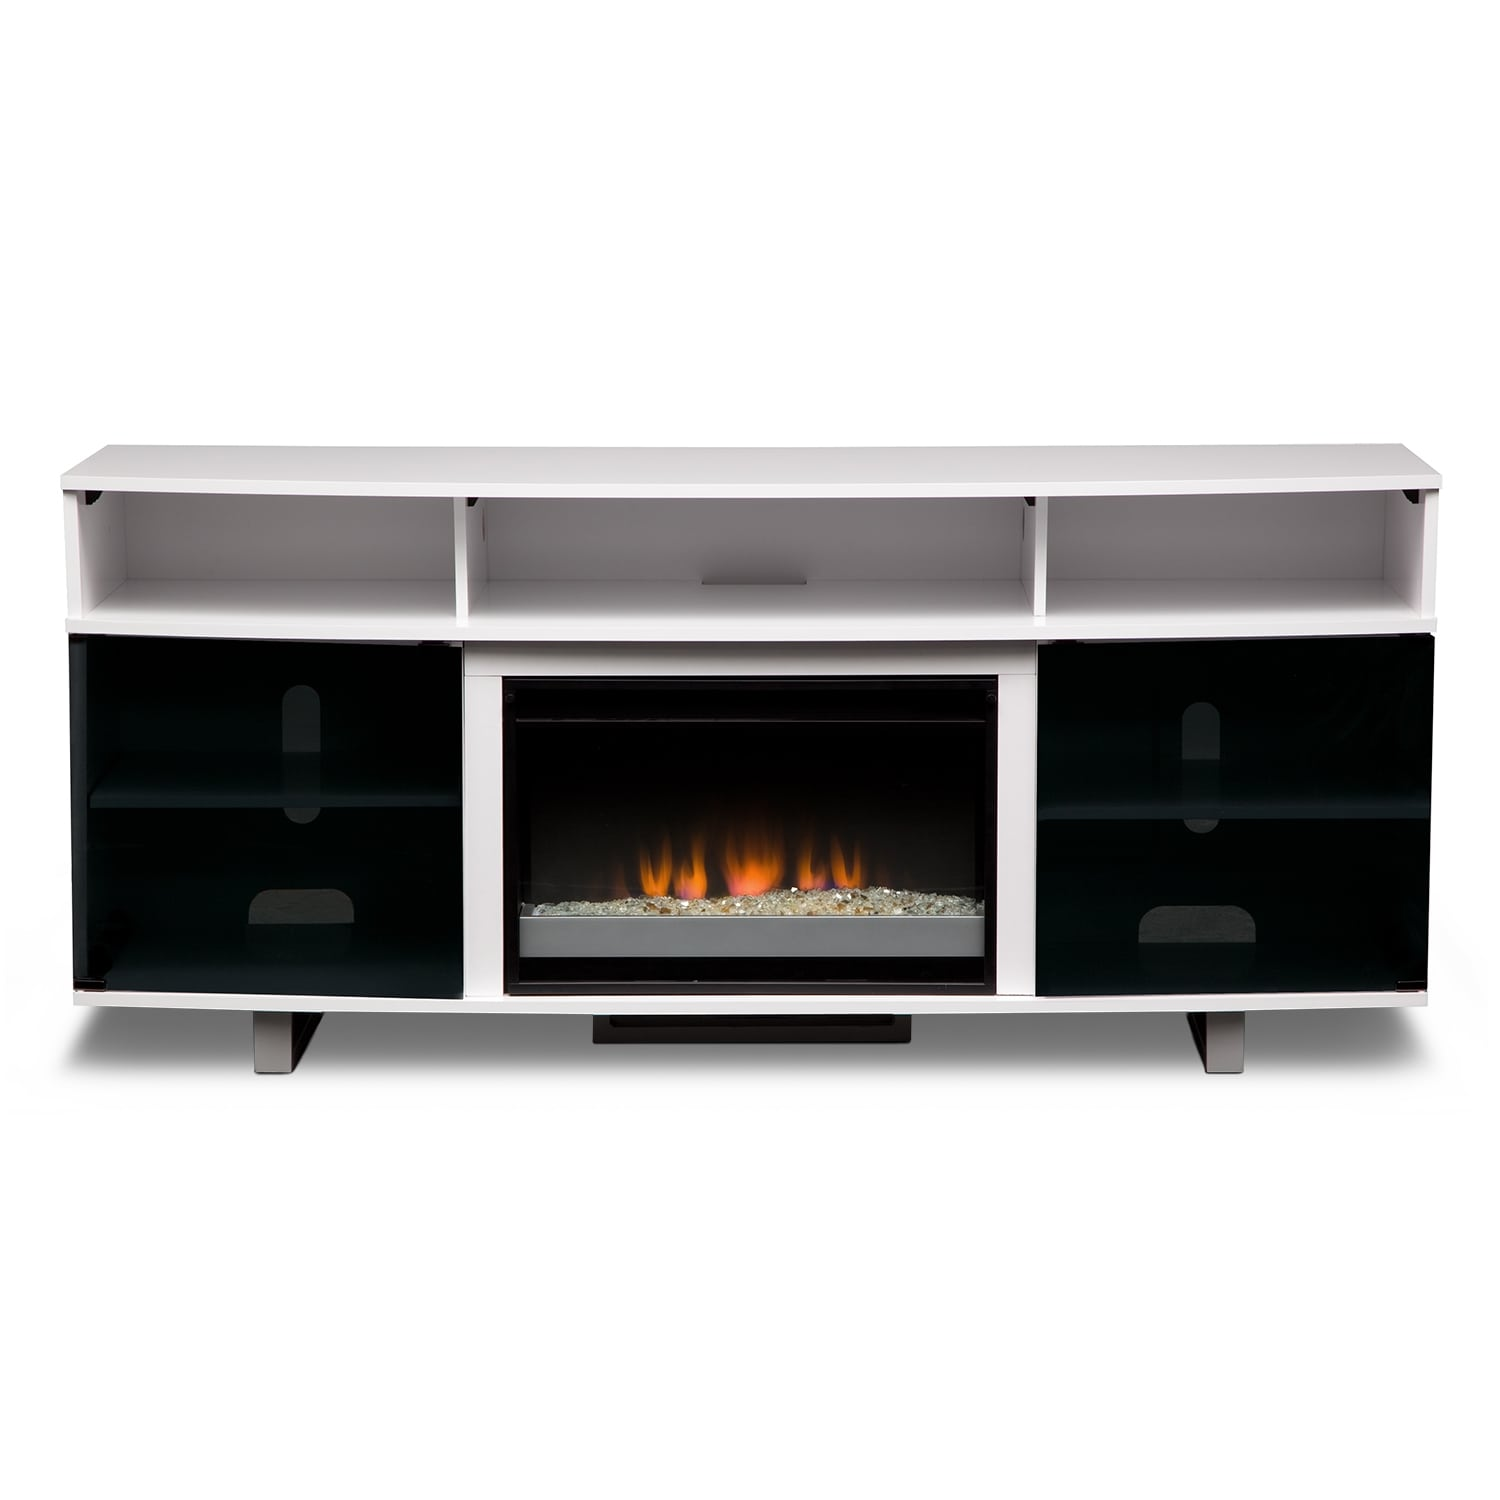 "King Size Mattress Serta Abruzzo White 72"" Contemporary Fireplace TV Stand ..."